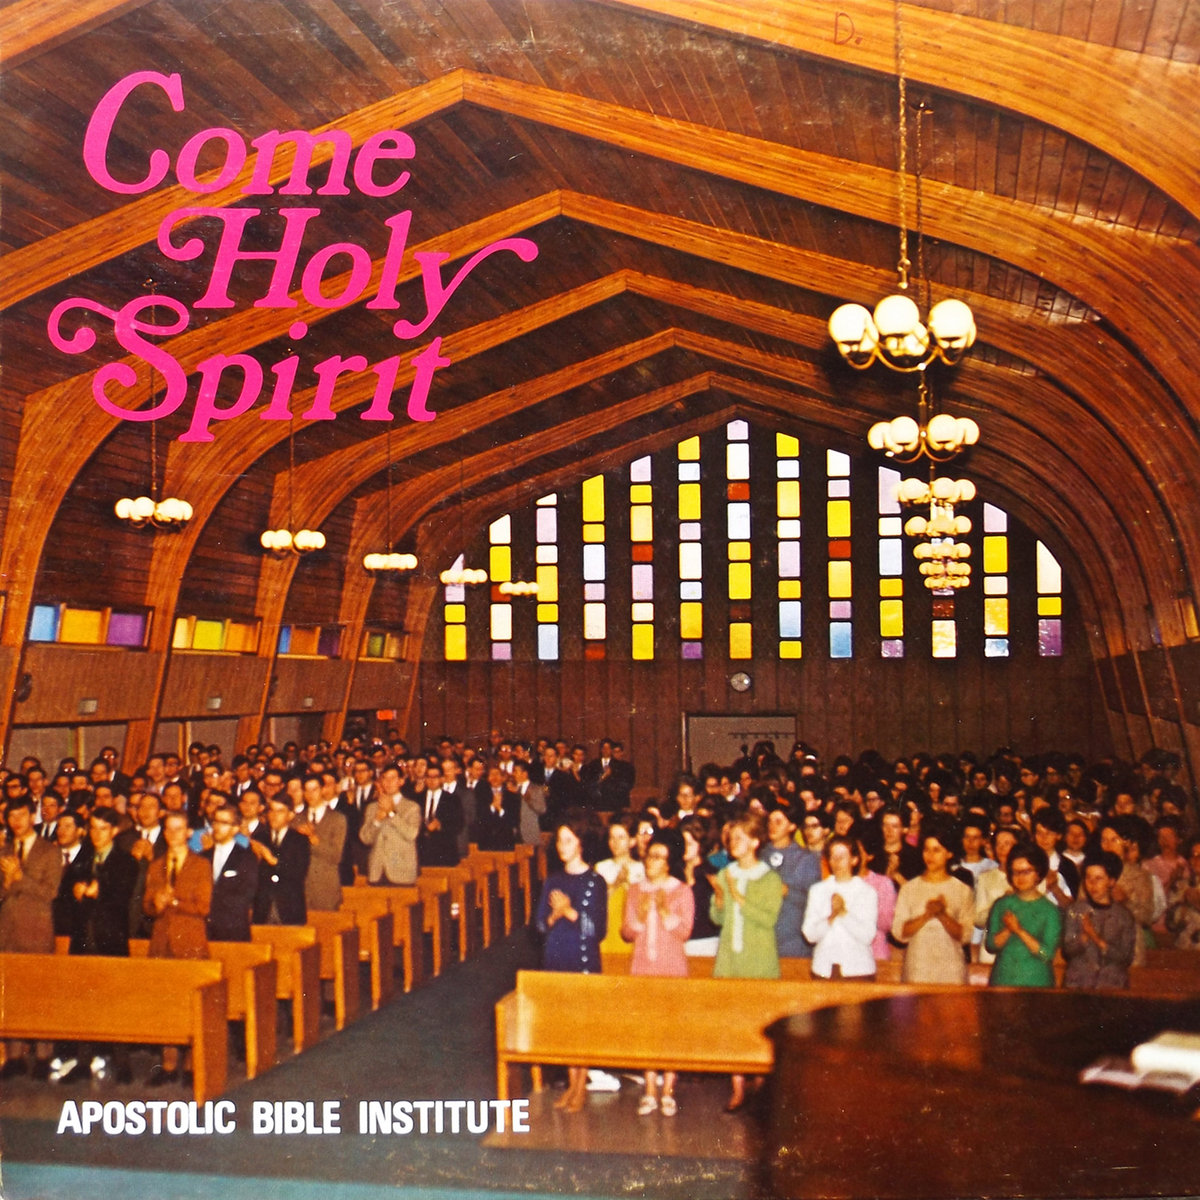 Apostolic Bible Institute-Come Holy Spirit   Hymn Time